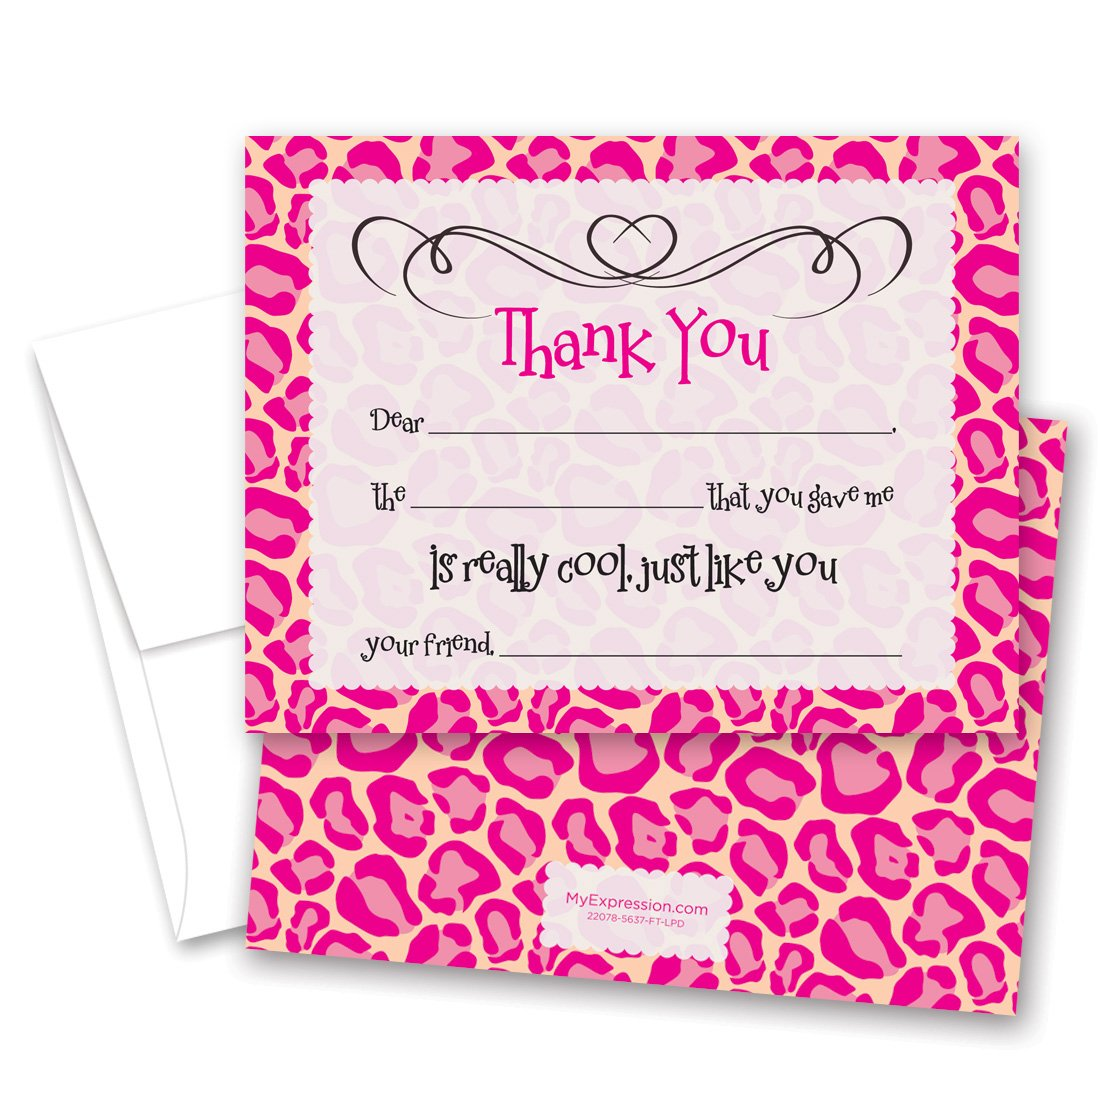 MyExpression.com 20 Pink Diva Days Girl Fill-in Birthday Thank You Cards